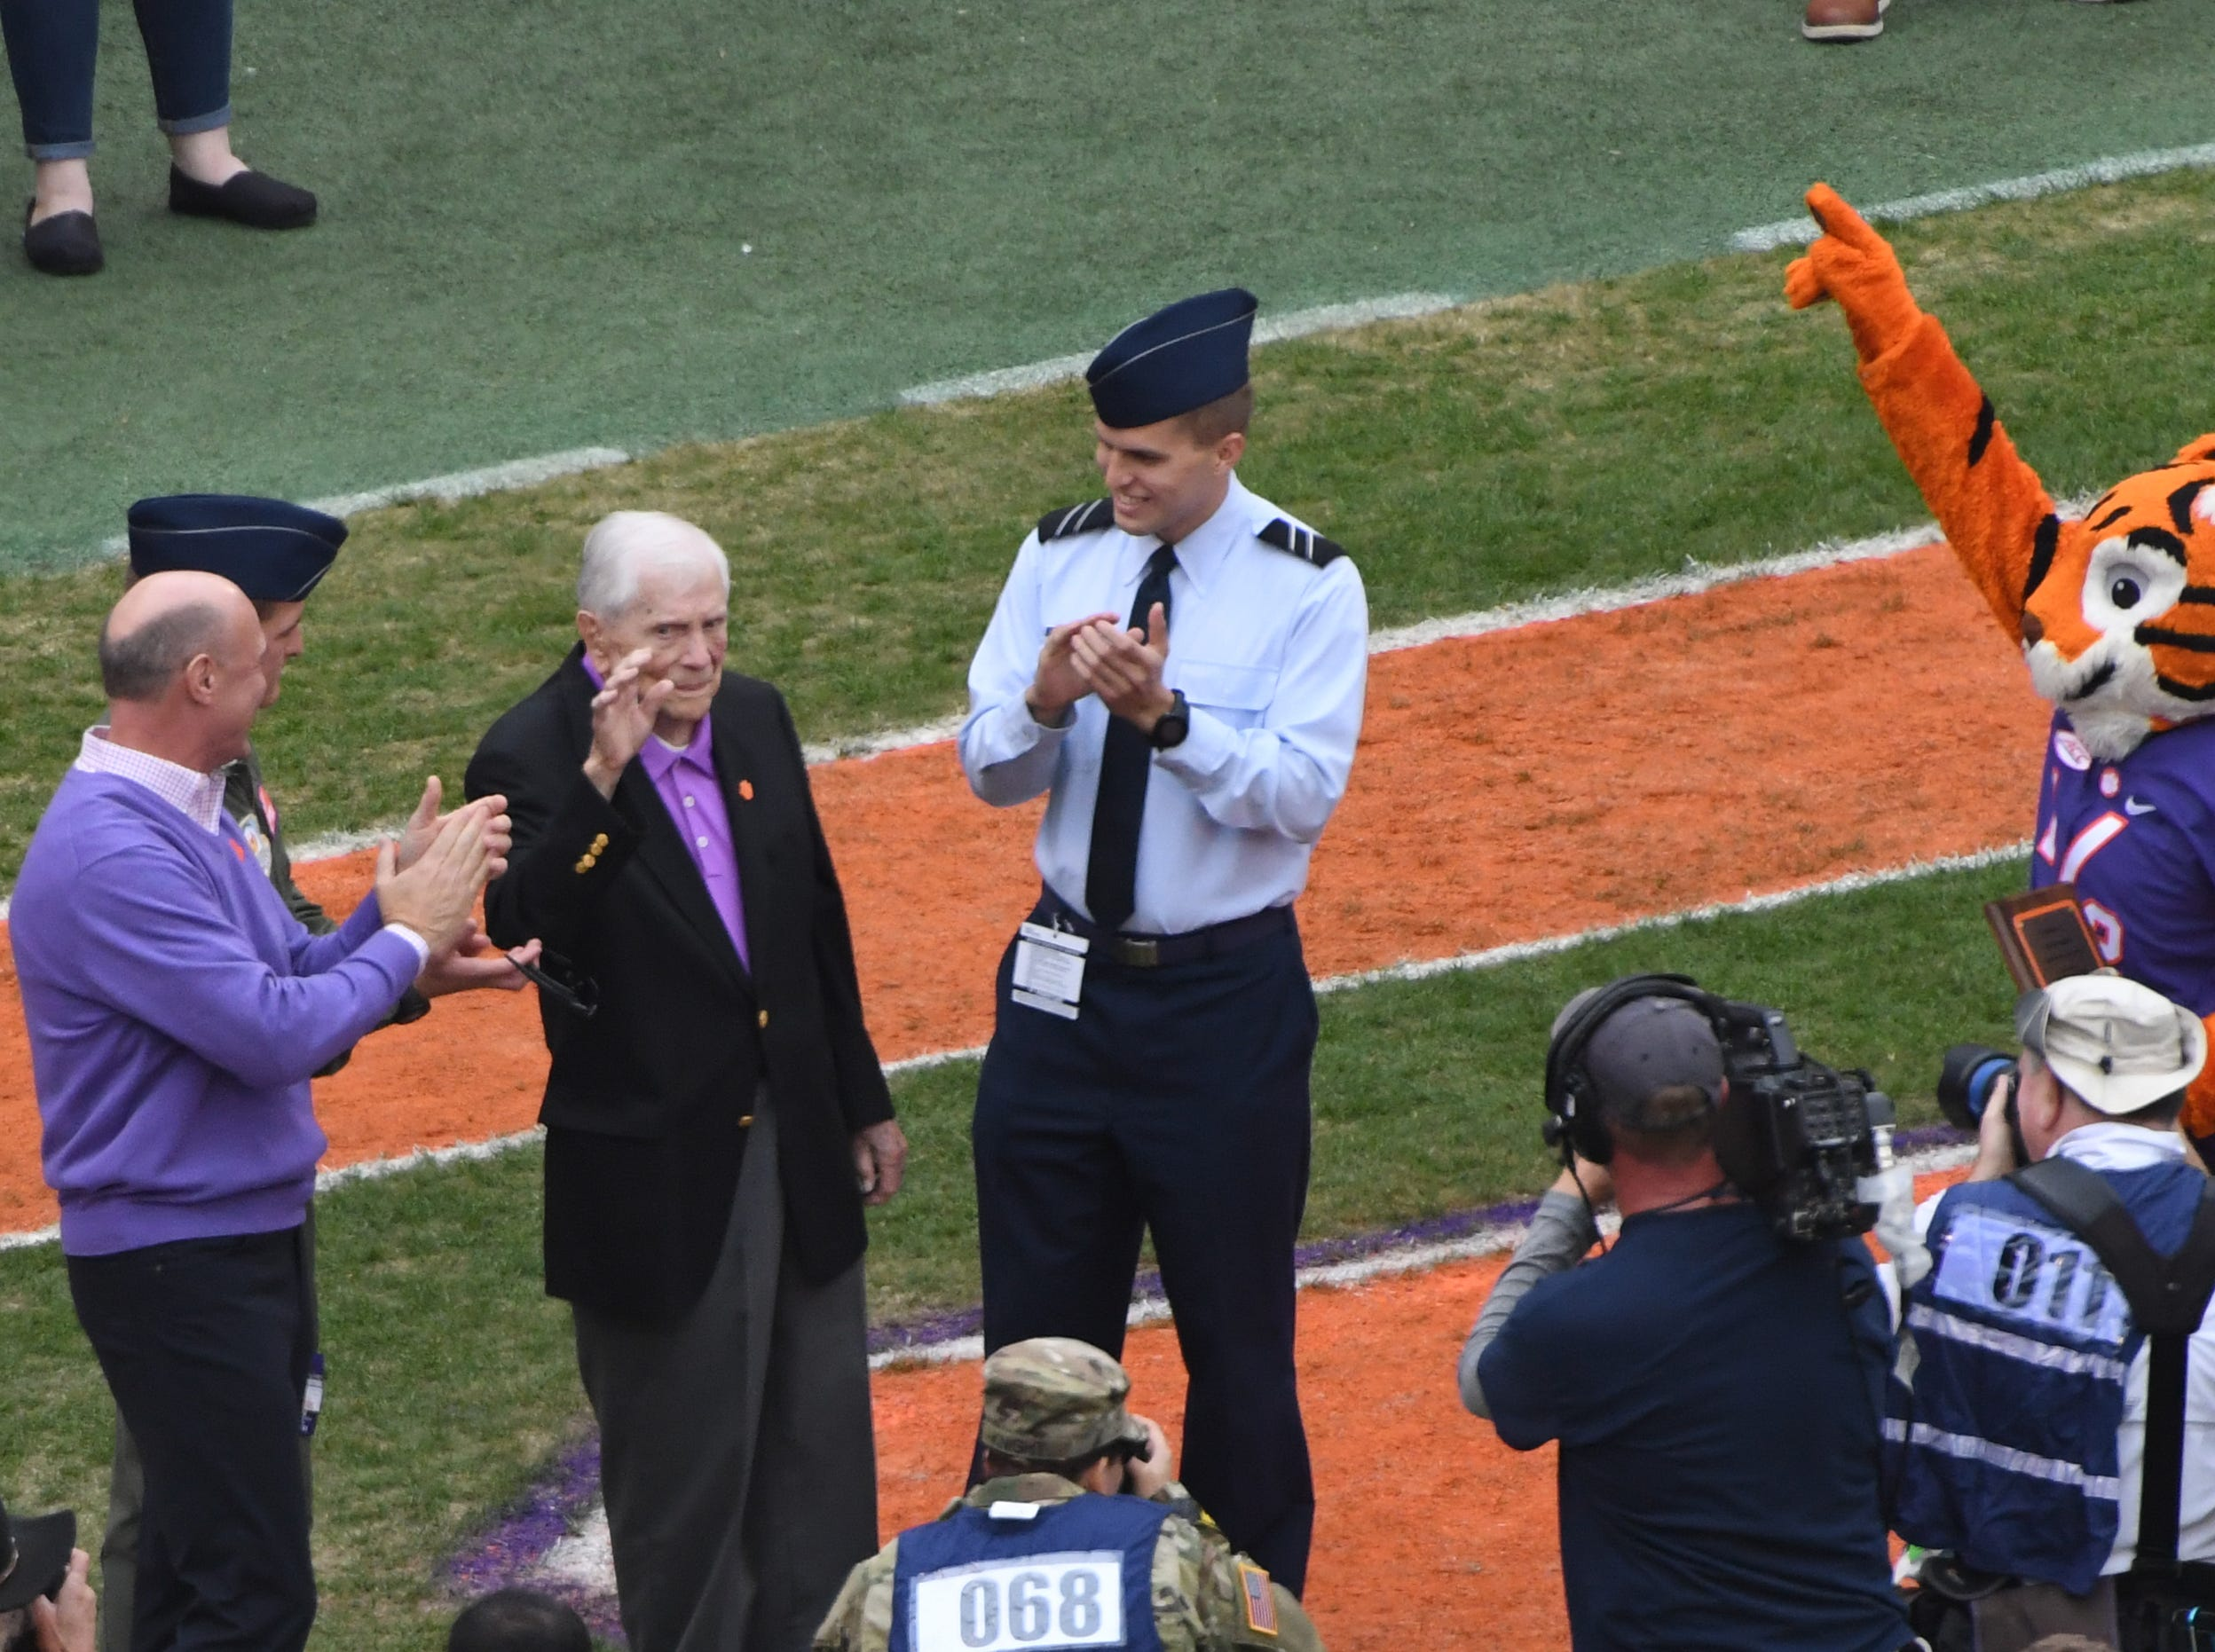 Col. Ben Skardon, 100-years old, a Clemson graduate and Bataan Death March survivor, waves as he is honored during Military Appreciation Day in Clemson on Saturday, November 17, 2017. President Jim Clements, left, joins the Tiger Cub, right, and others in the presentation during the first quarter in Memorial Stadium at Clemson on Saturday.